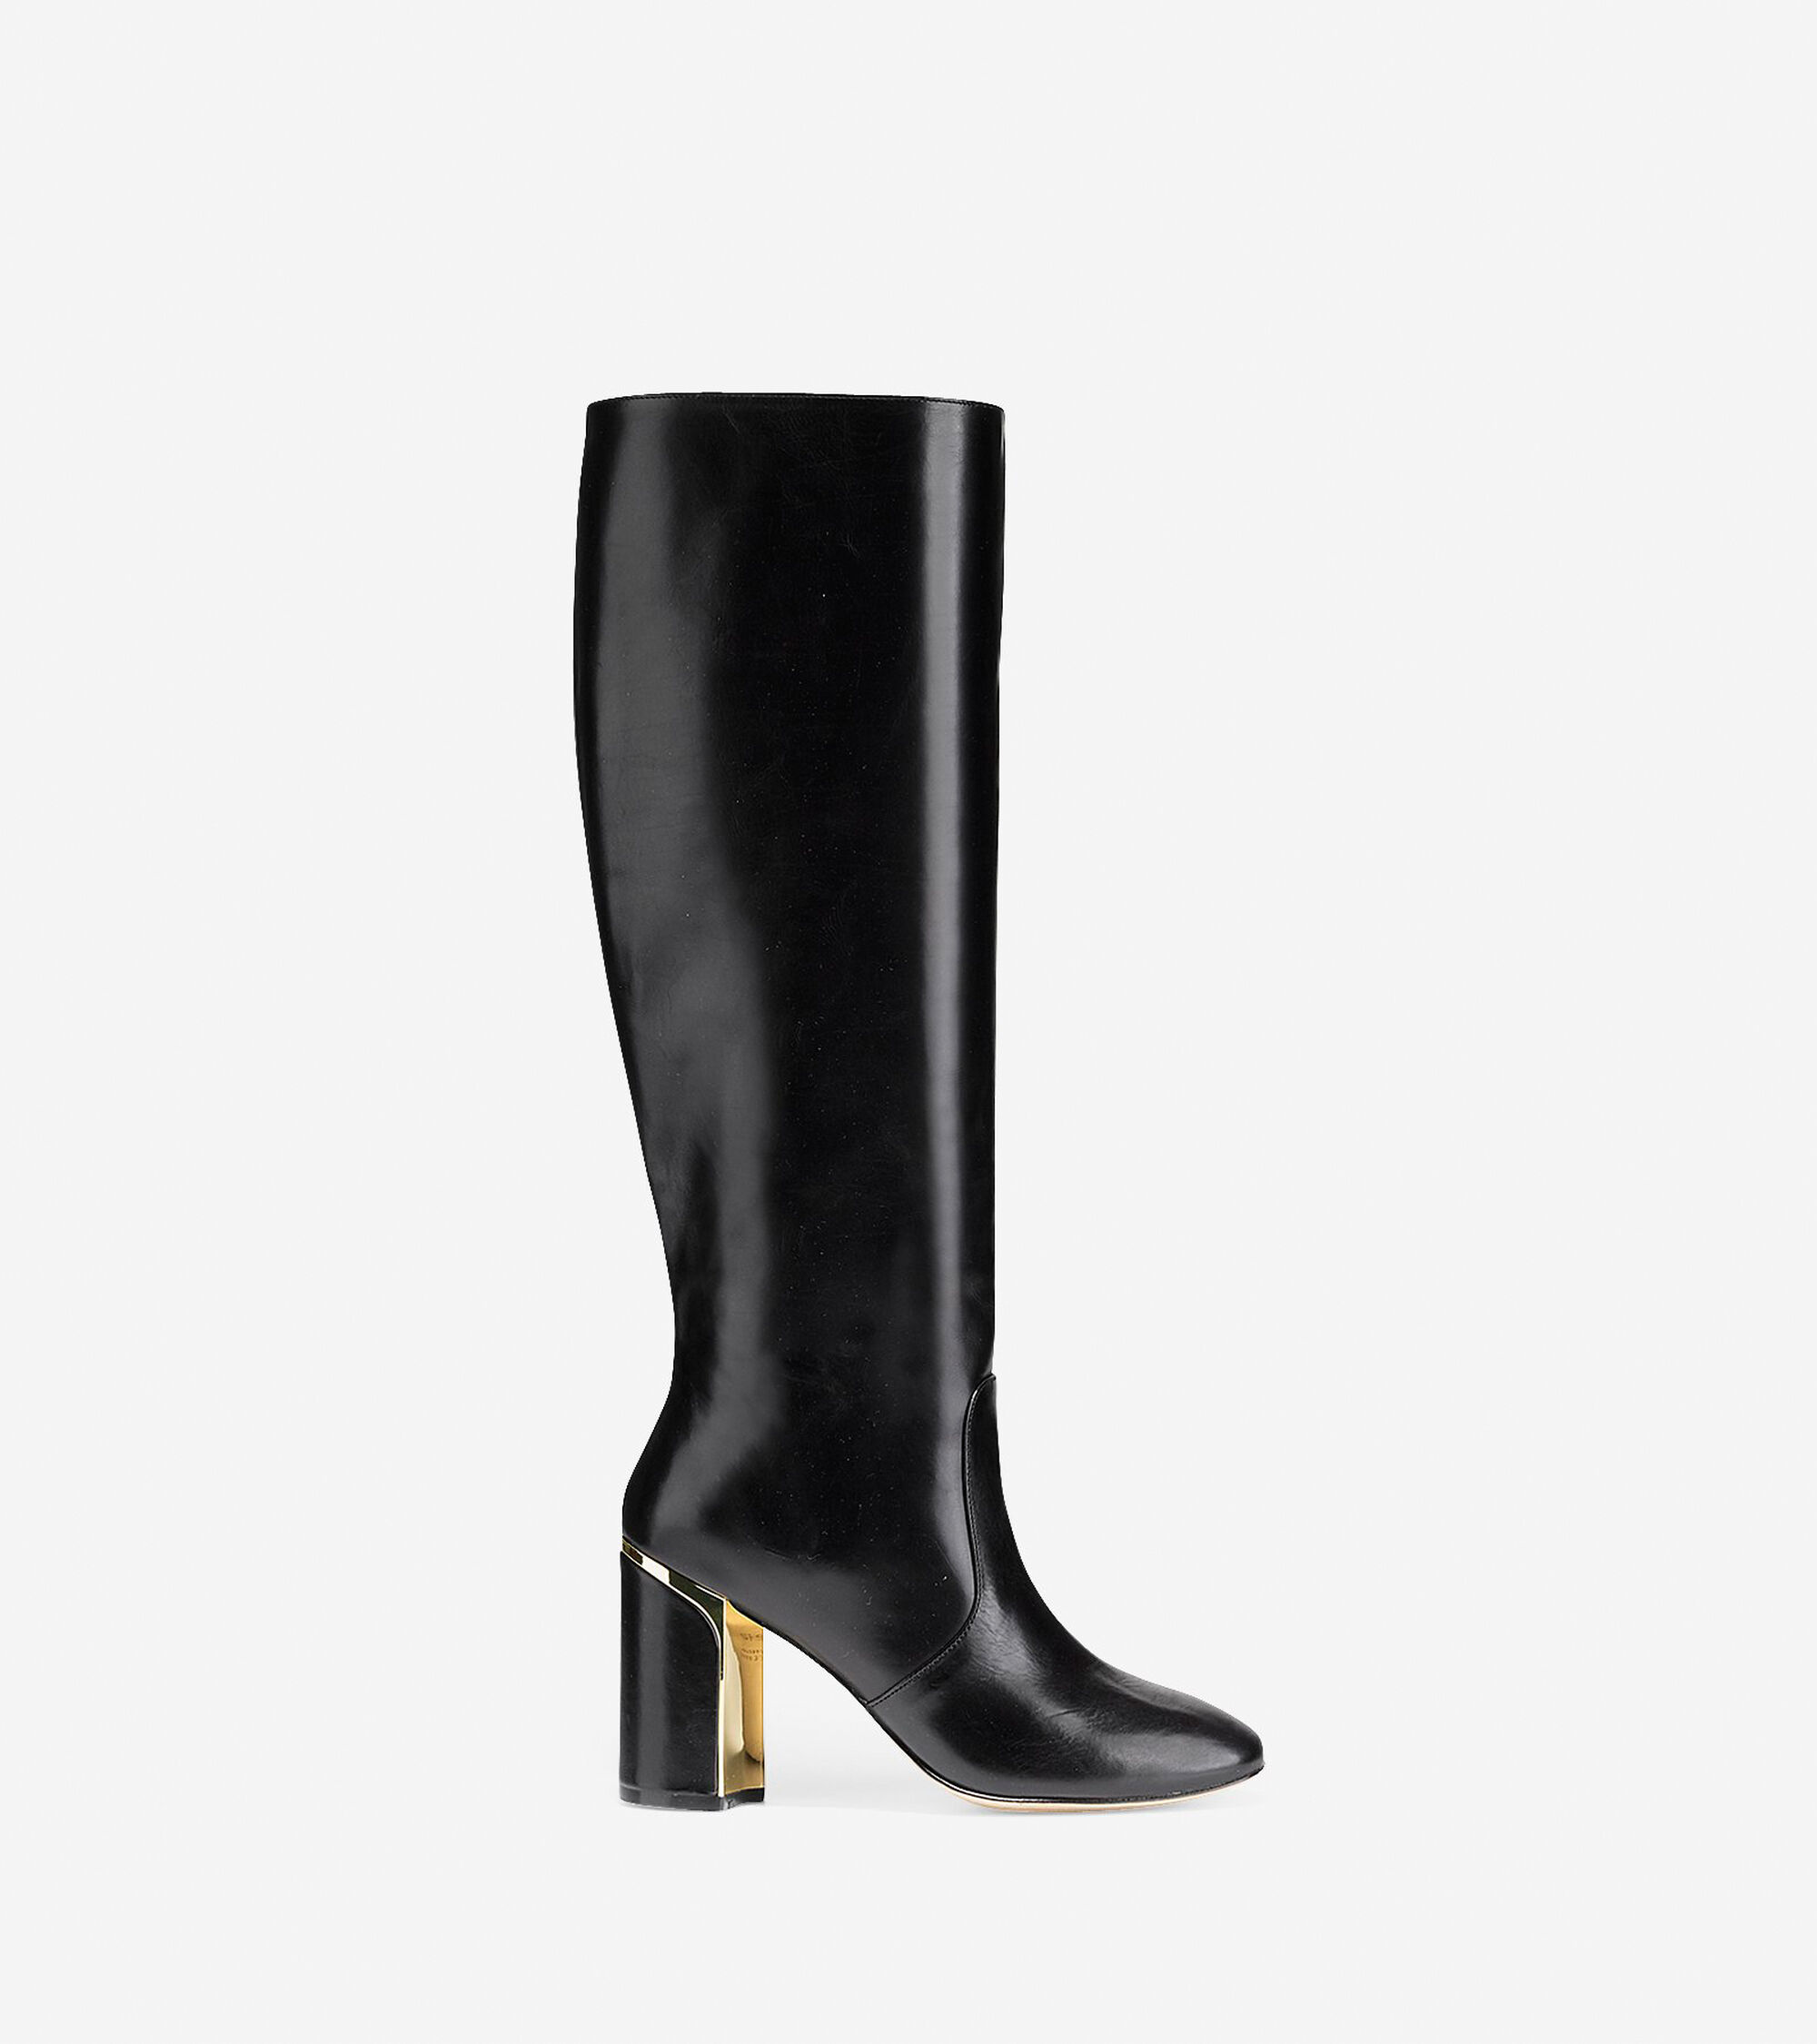 Cole Haan Collection Tall Boots